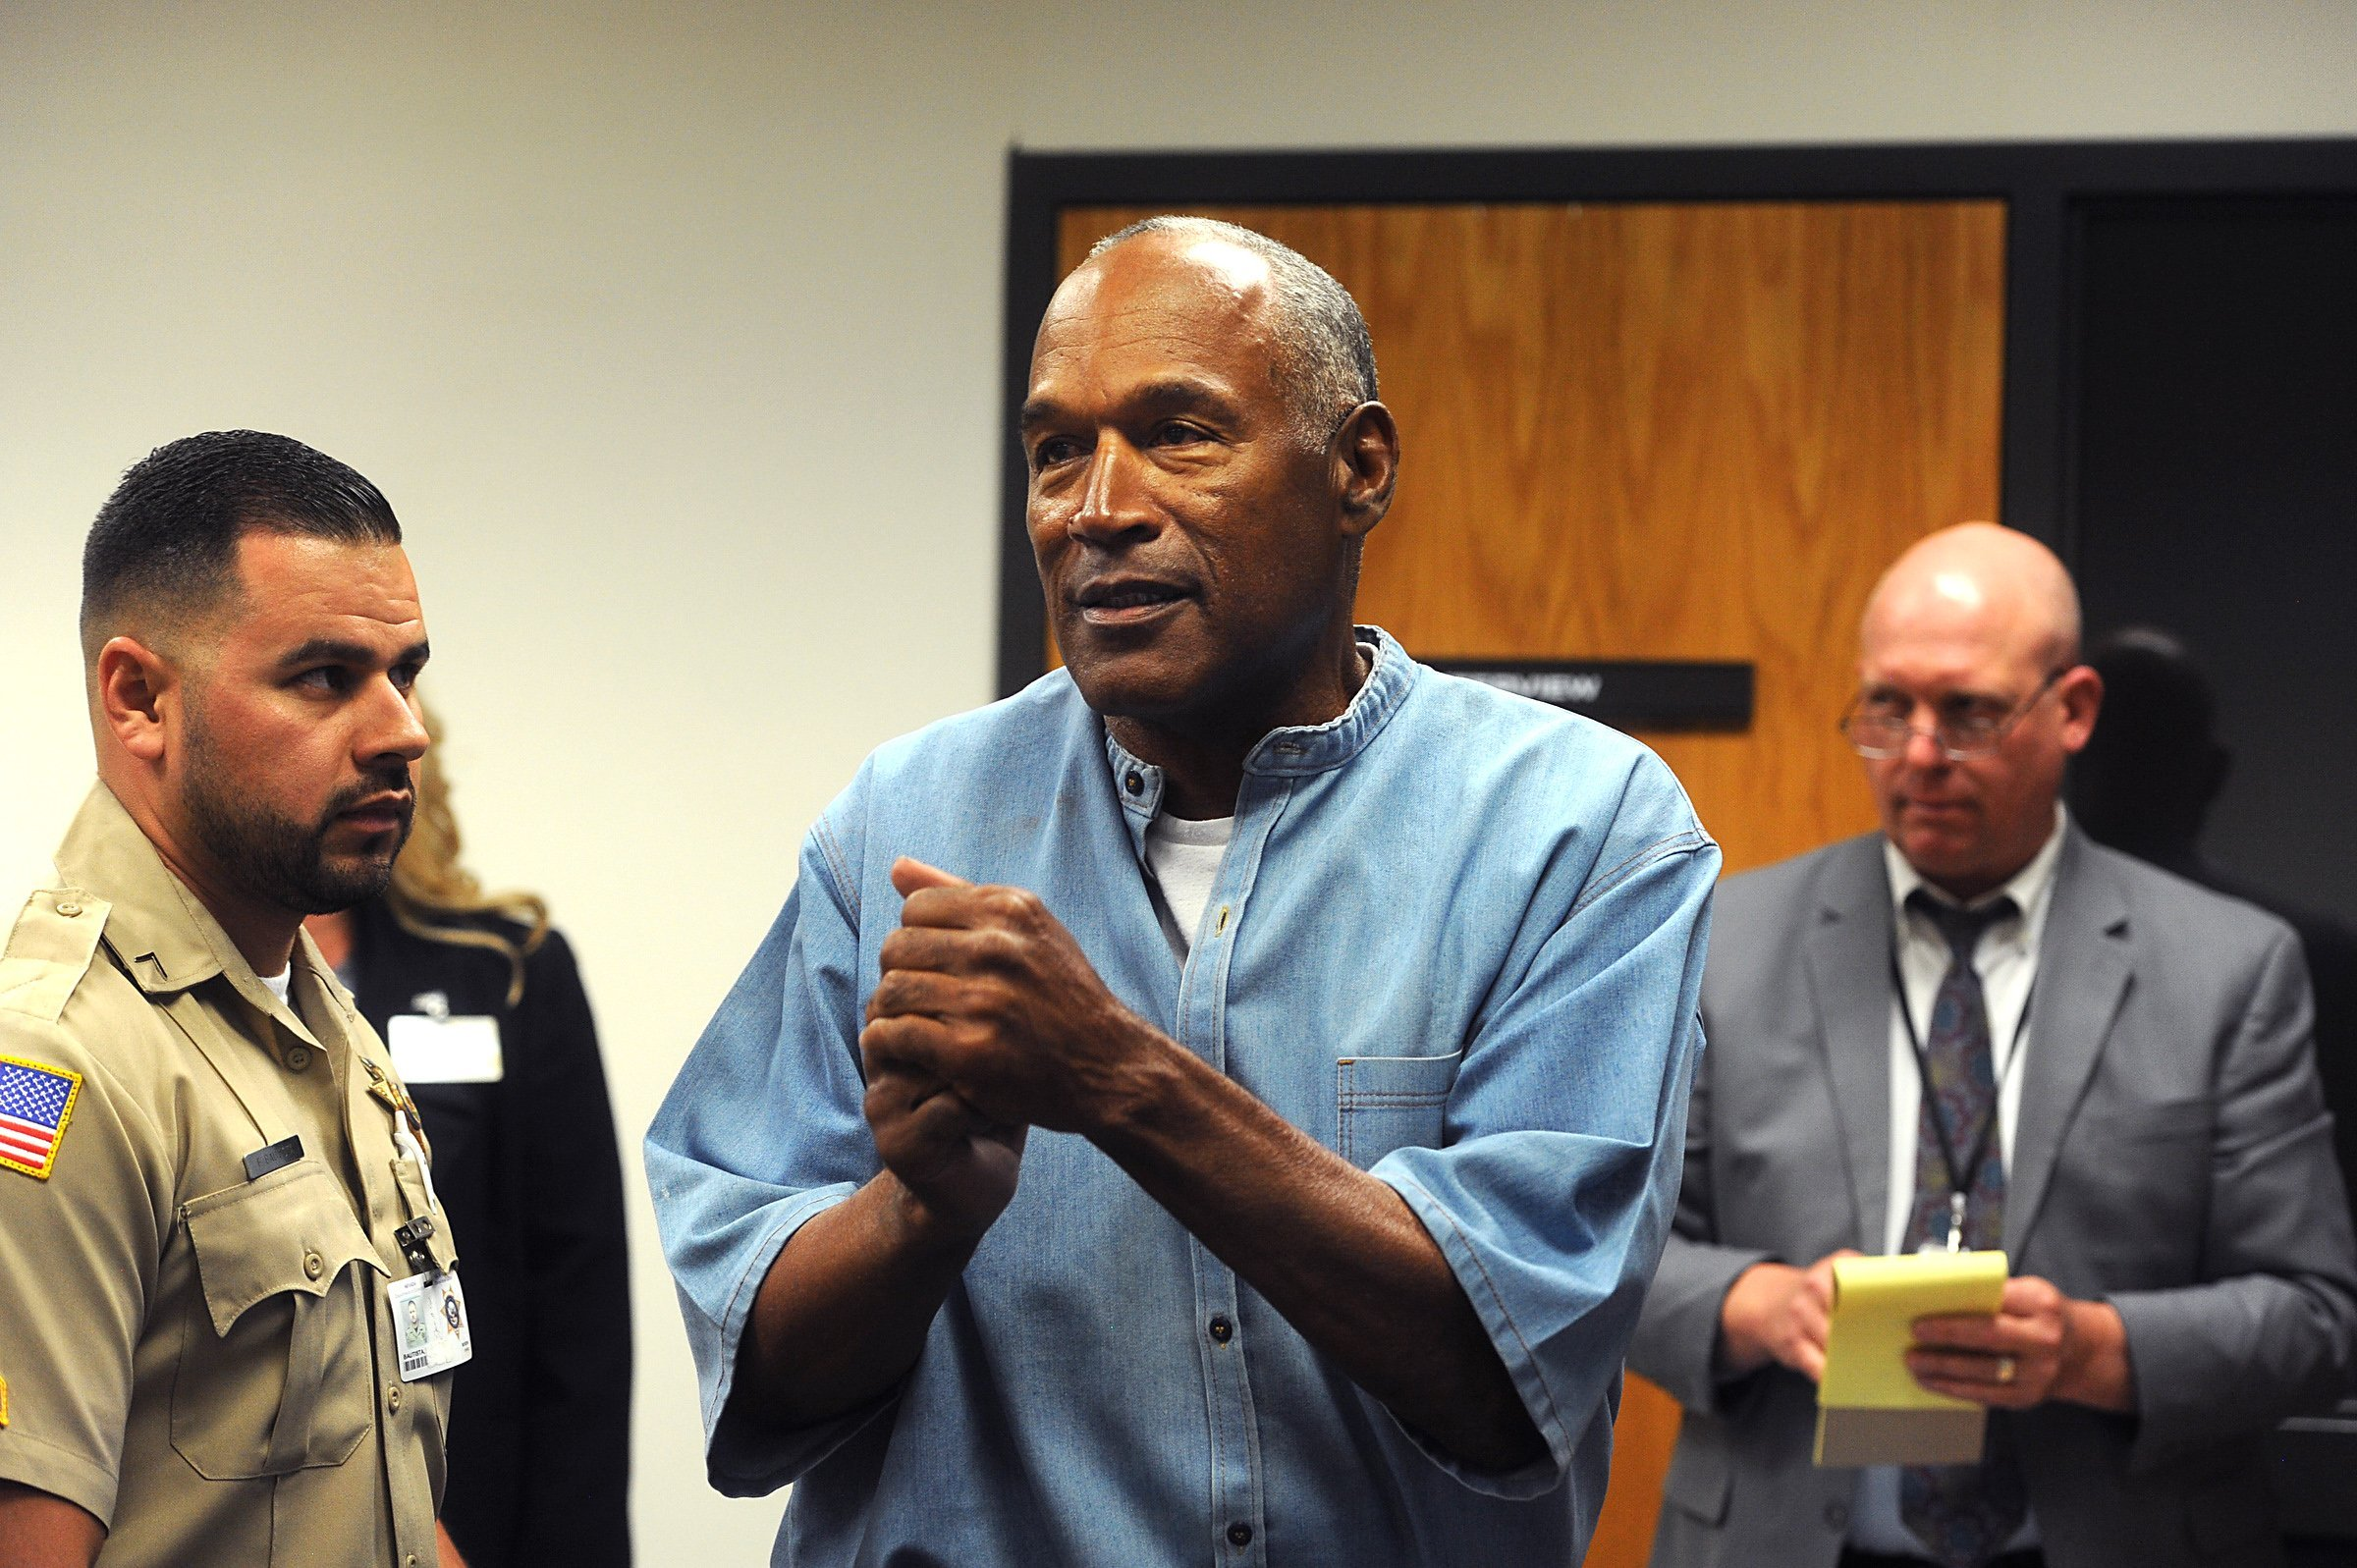 O.J. Simpson after a parole hearing at Lovelock Correctional Center in Lovelock, Nevada, U.S., on July 20, 2017. | Photo: Getty Images